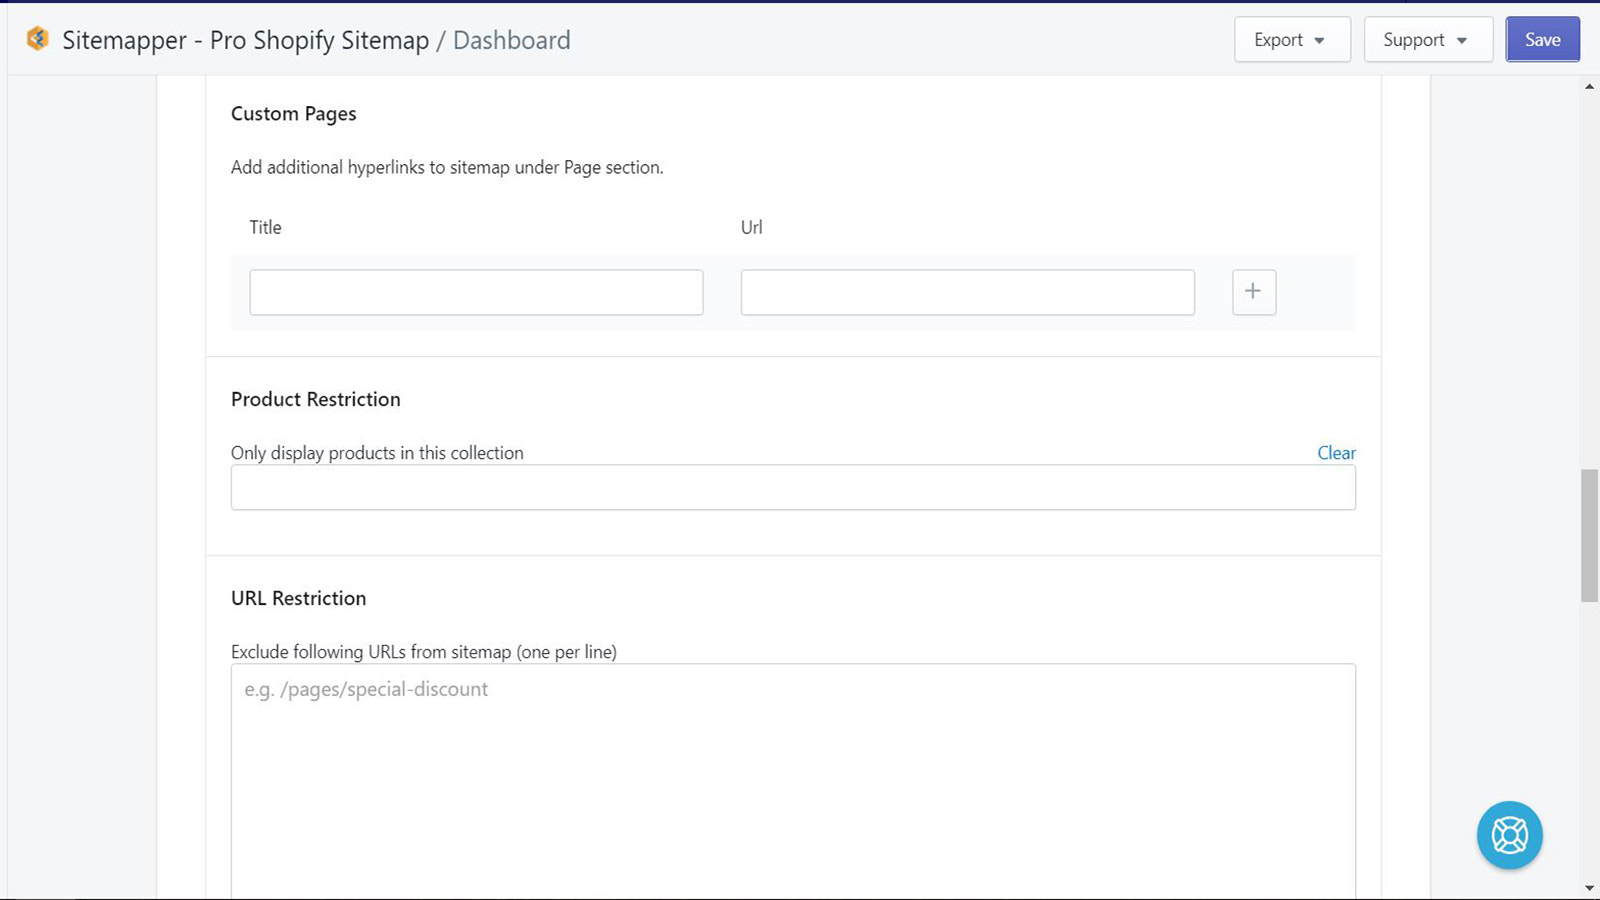 Customize the appearance of Shopify sitemap